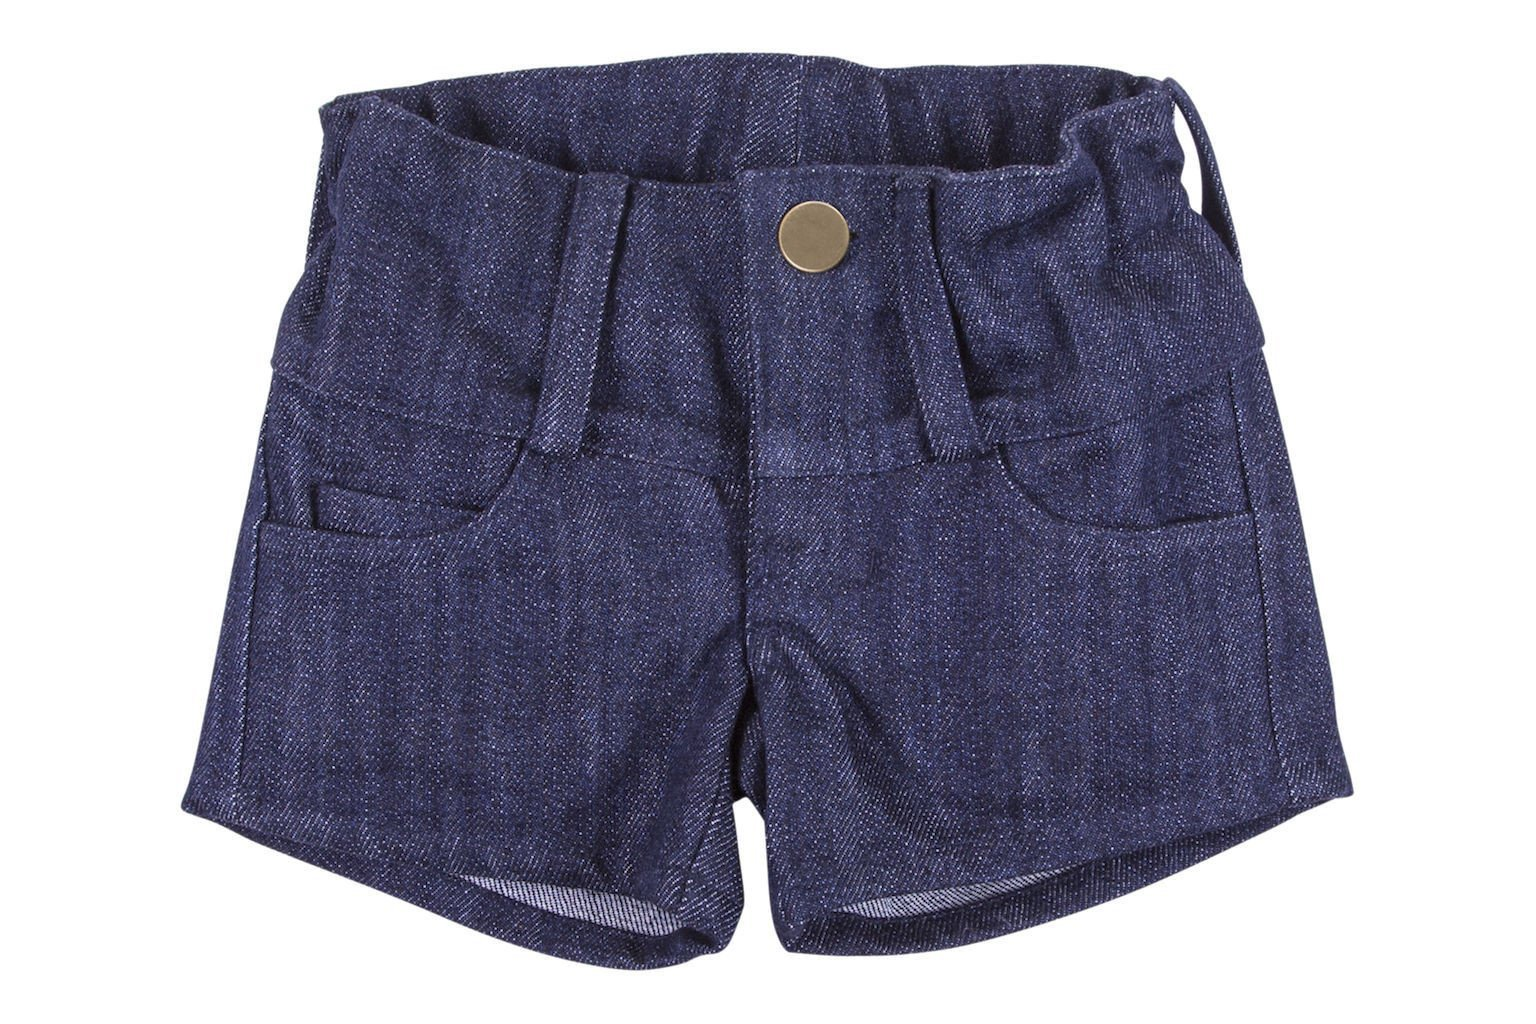 Denim Loop-Knit Short - HUGABUG